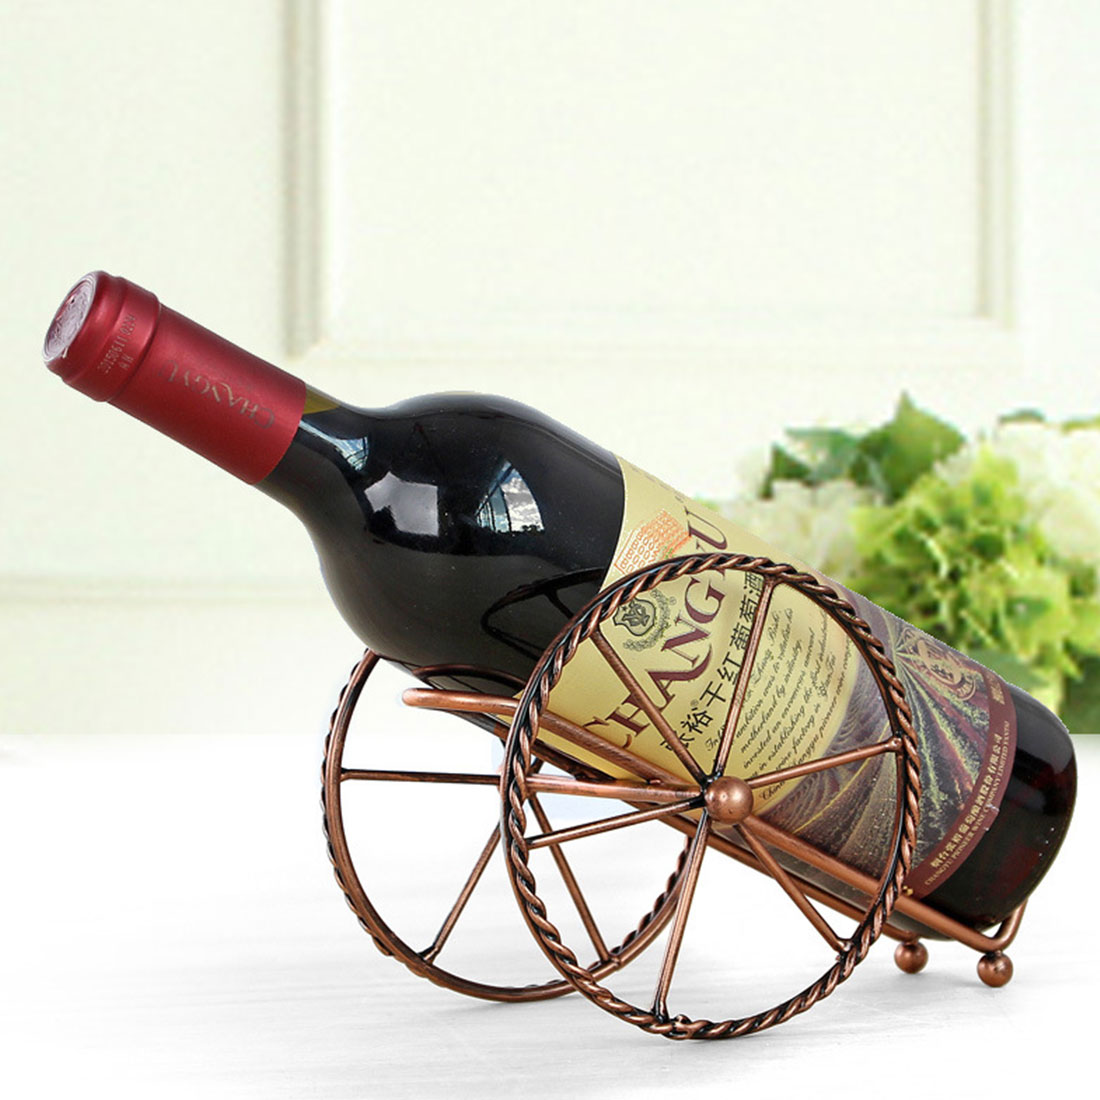 Decorative Metal Wine Racks Creative European Metal Wine Decoration Wrought Iron Wine Rack For Single Wine Bottle Home Decoration Interior Crafts